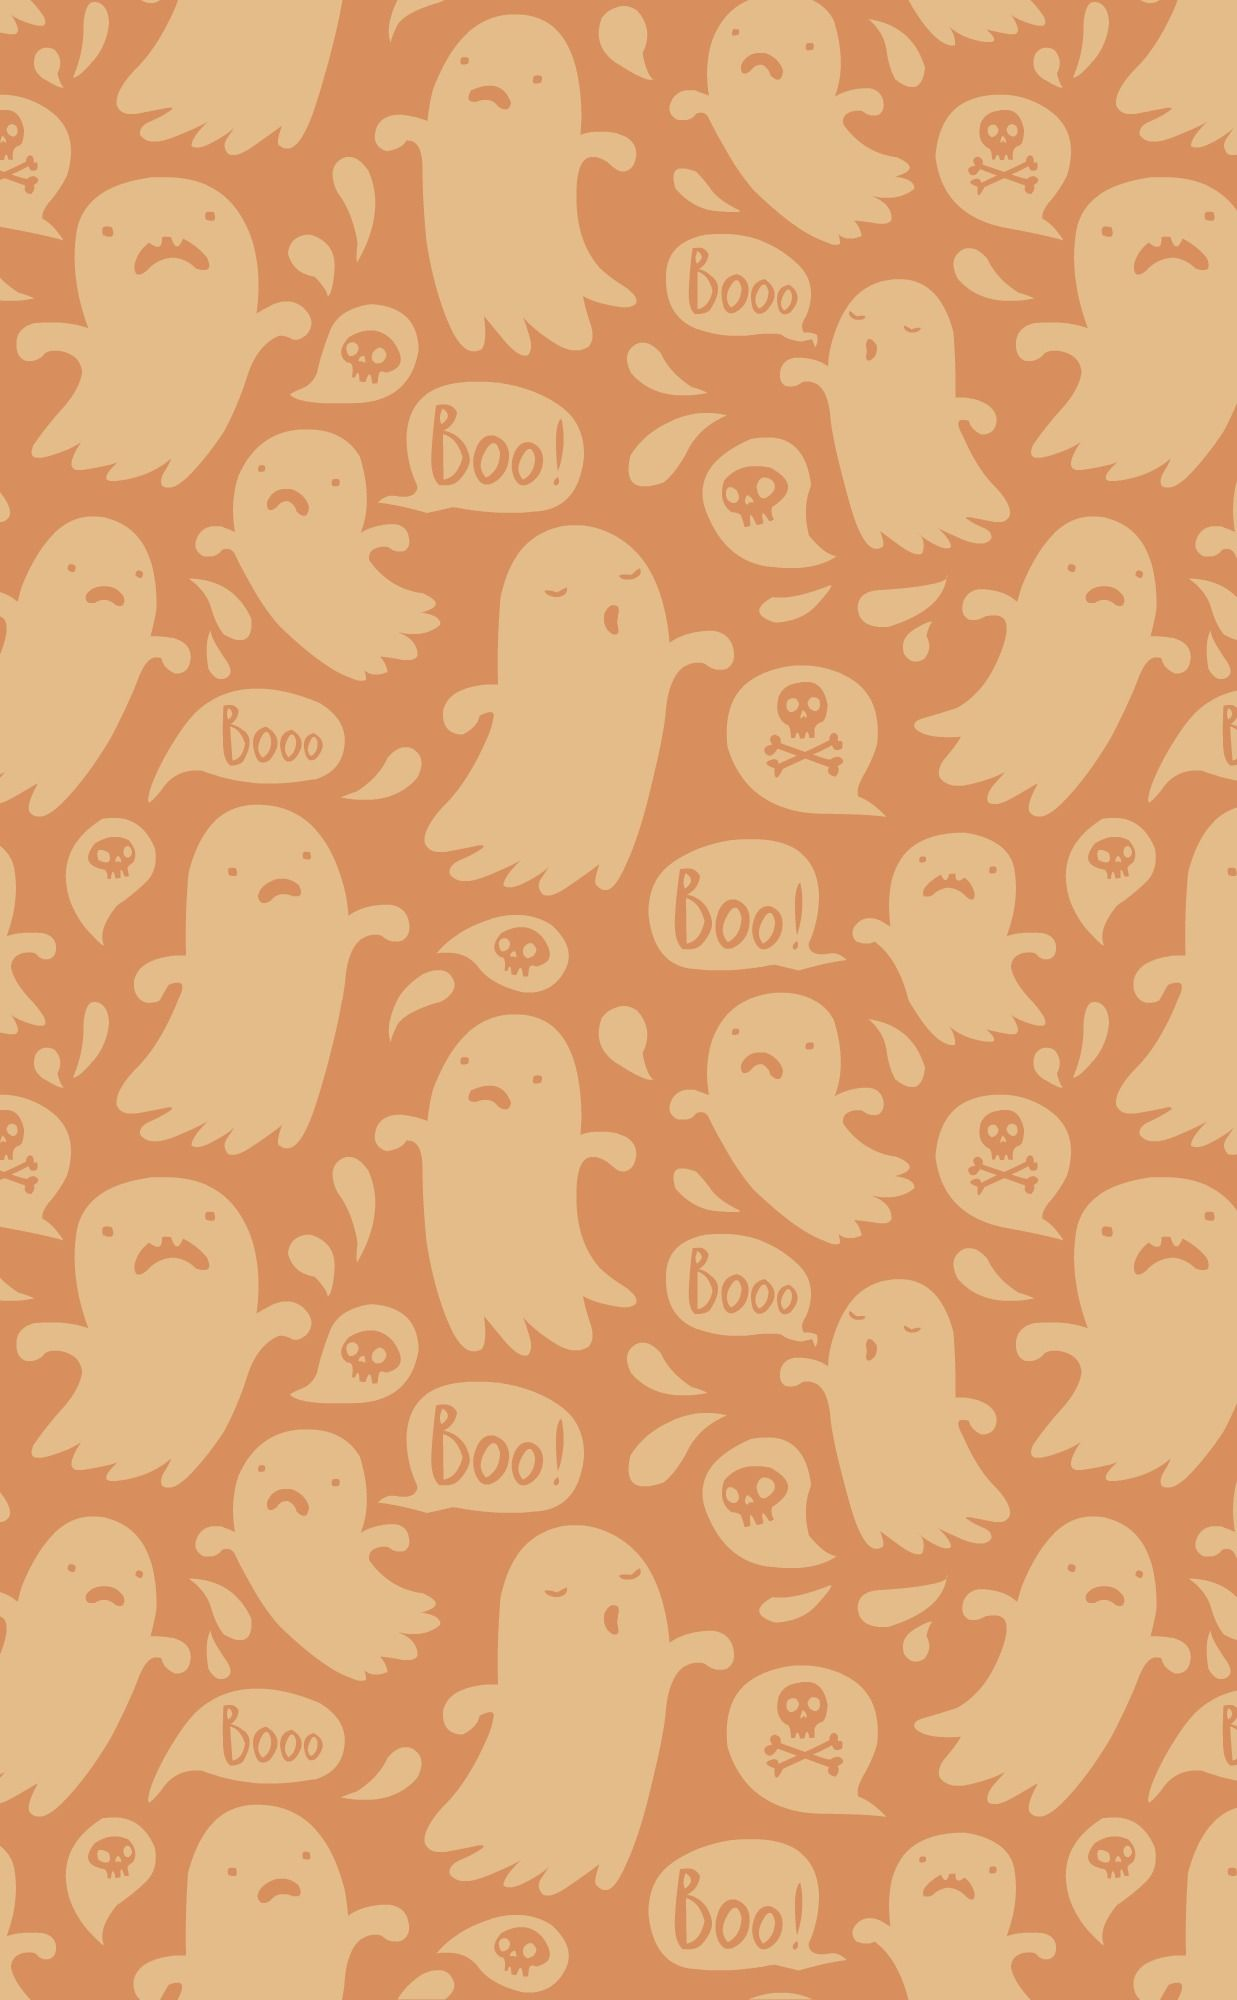 Boo Ghost Halloween Phone Wallpaper Background Made By Angelica Jackson Papel De Parede De Halloween Fundos Do Dia Das Bruxas Fundos De Telefone Tumblr